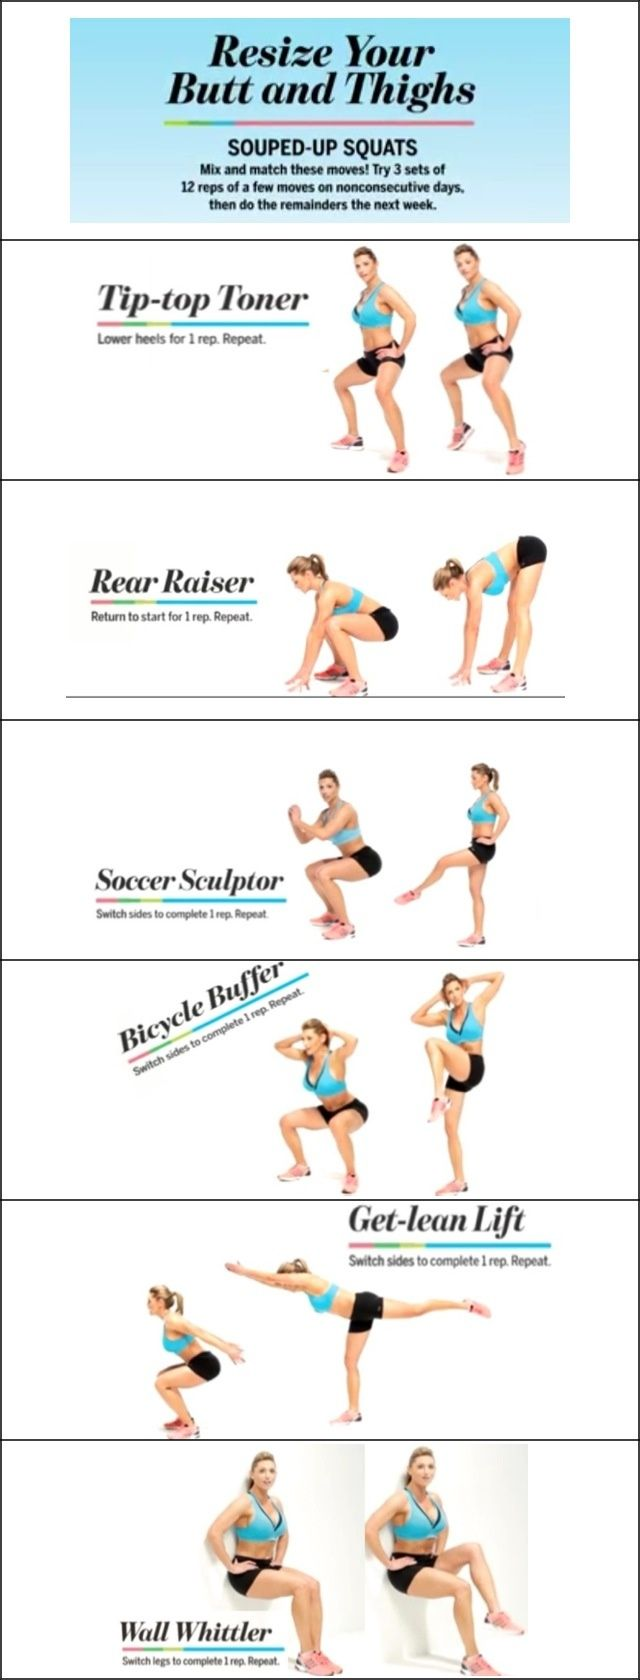 See more here ► https://www.youtube.com/watch?v=t6ic0NKYUMU Tags: how to lose your belly fat, how do you lose belly fat, how do you lose belly fat - Resize your butt and thighs in 6 moves #exercise #diet #workout #fitness #health